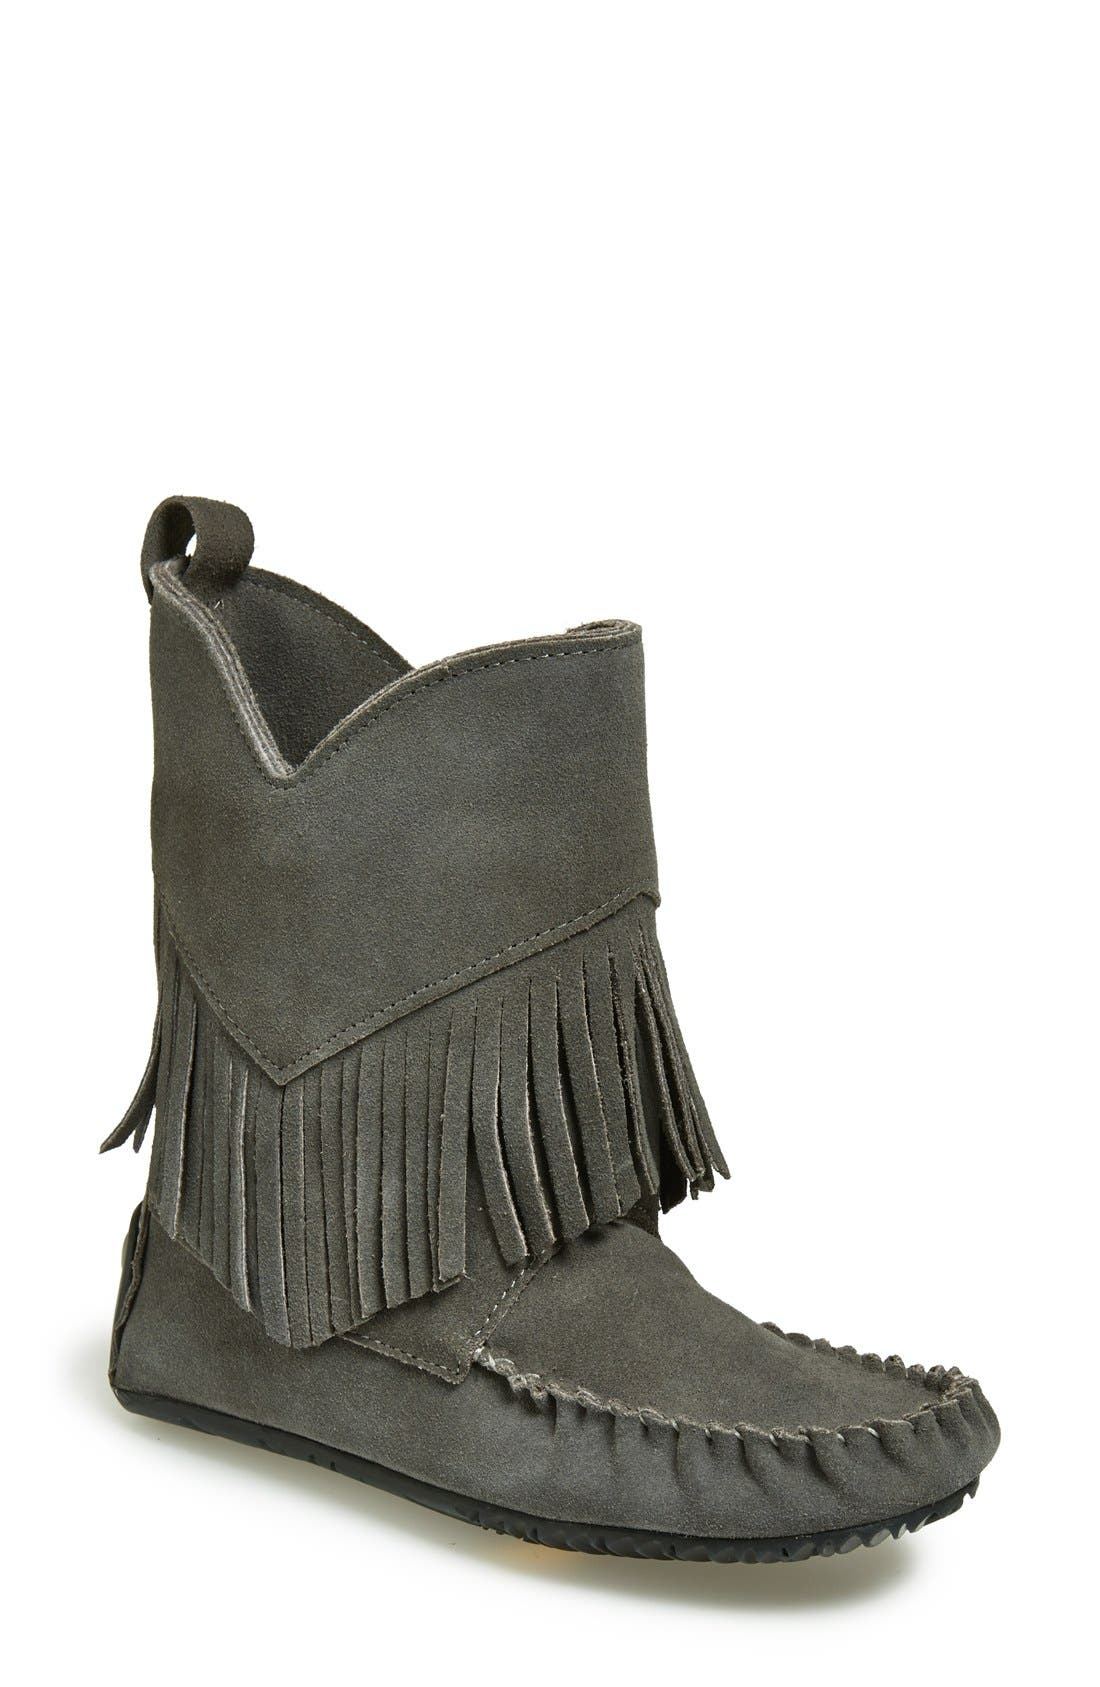 'Okotoks' Suede Boot,                         Main,                         color, Charcoal